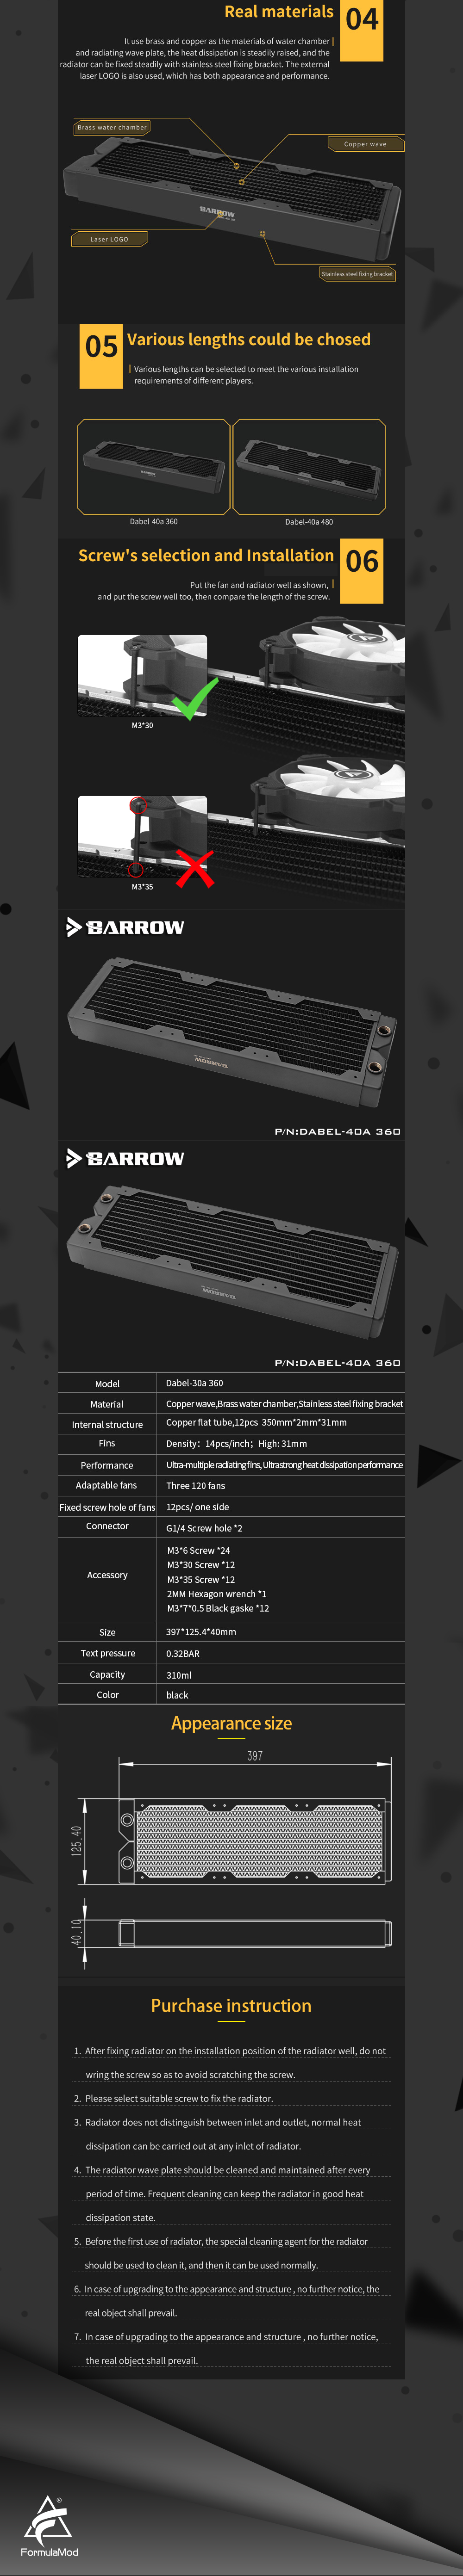 Barrow Copper Radiator 40mm Thickness 12 Circulating Waterways, Suitable For 120mm Fans, Dabel-40a 360